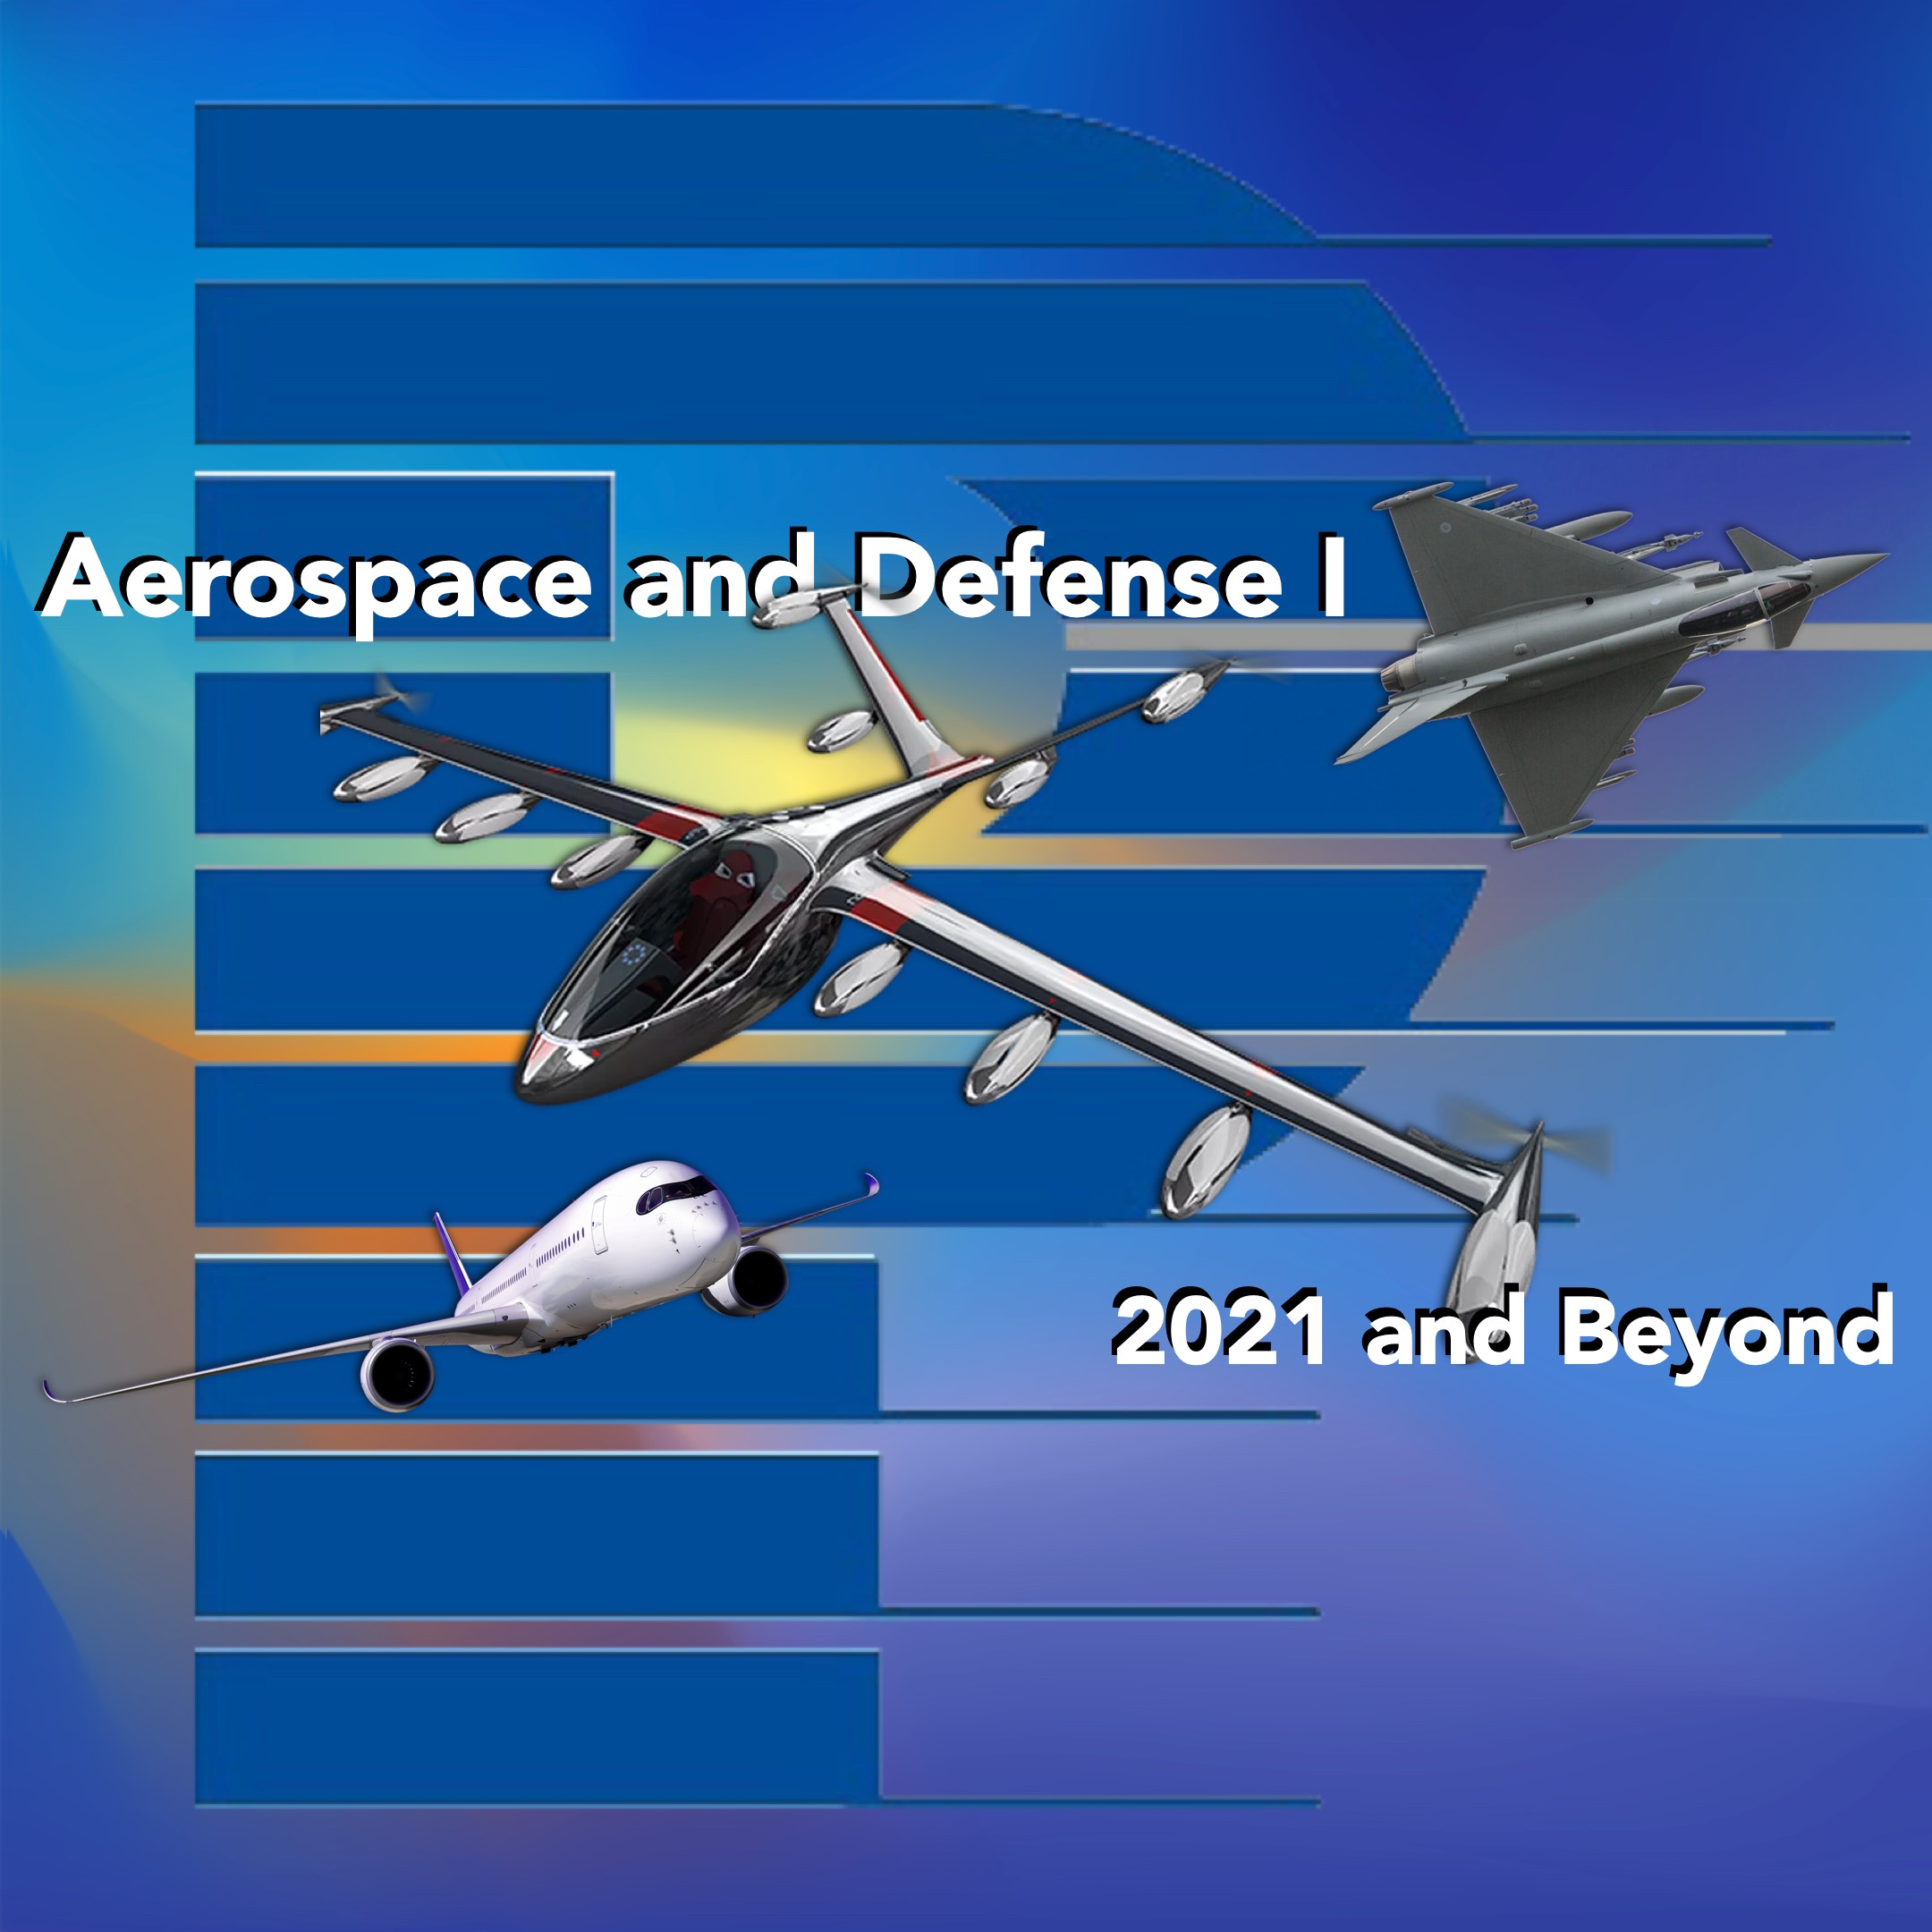 Aerospace and Defense: 2021 and Beyond